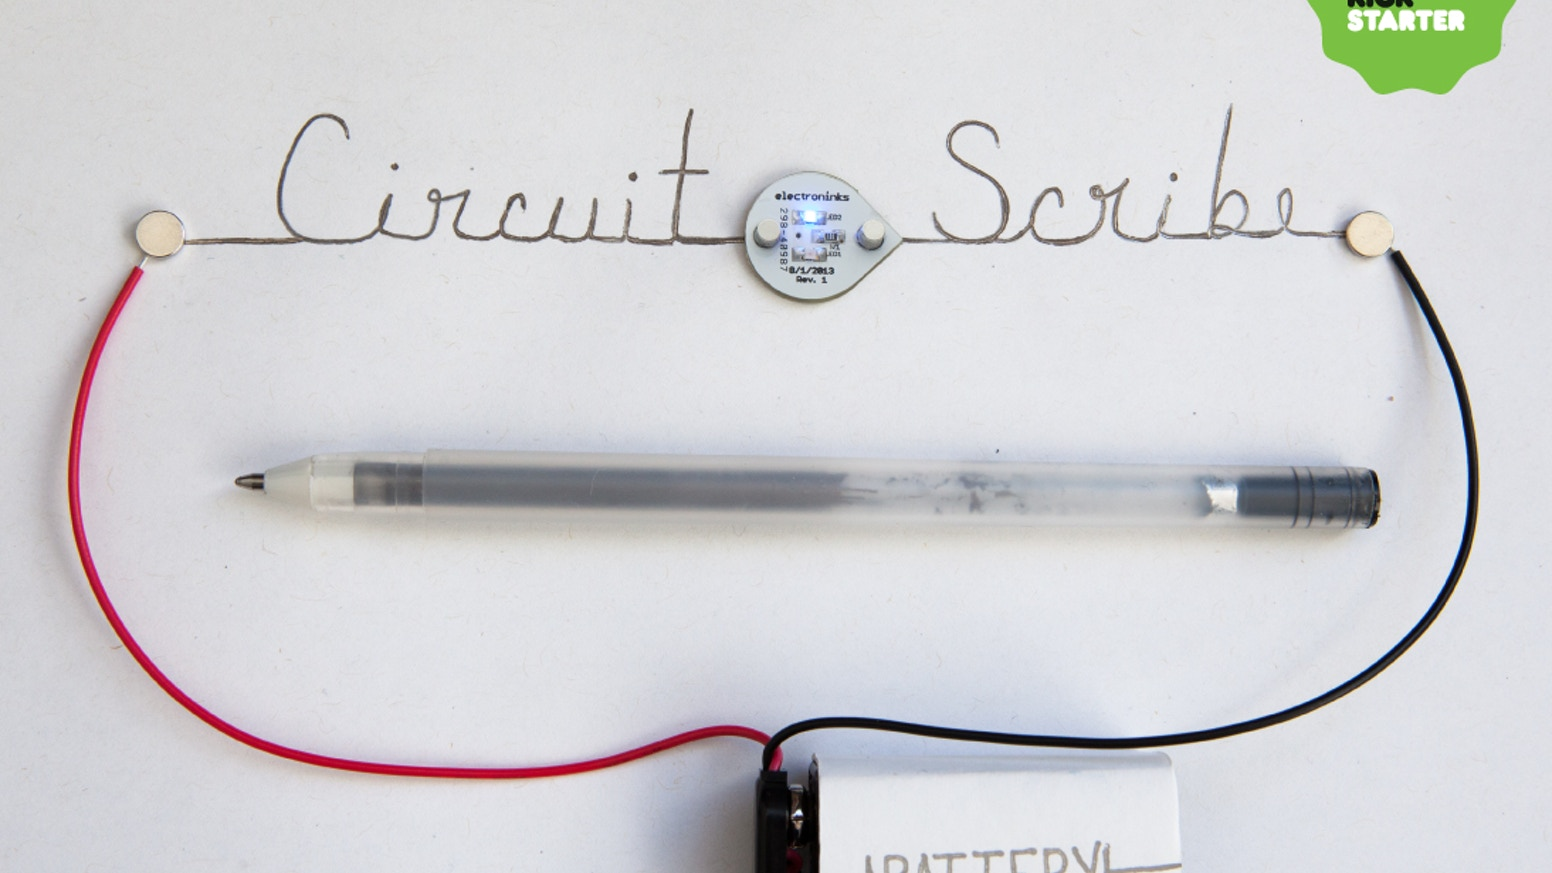 Circuit Scribe Draw Circuits Instantly By Electroninks Incorporated A Is Rollerball Pen That Writes With Conductive Silver Ink It Makes Creating